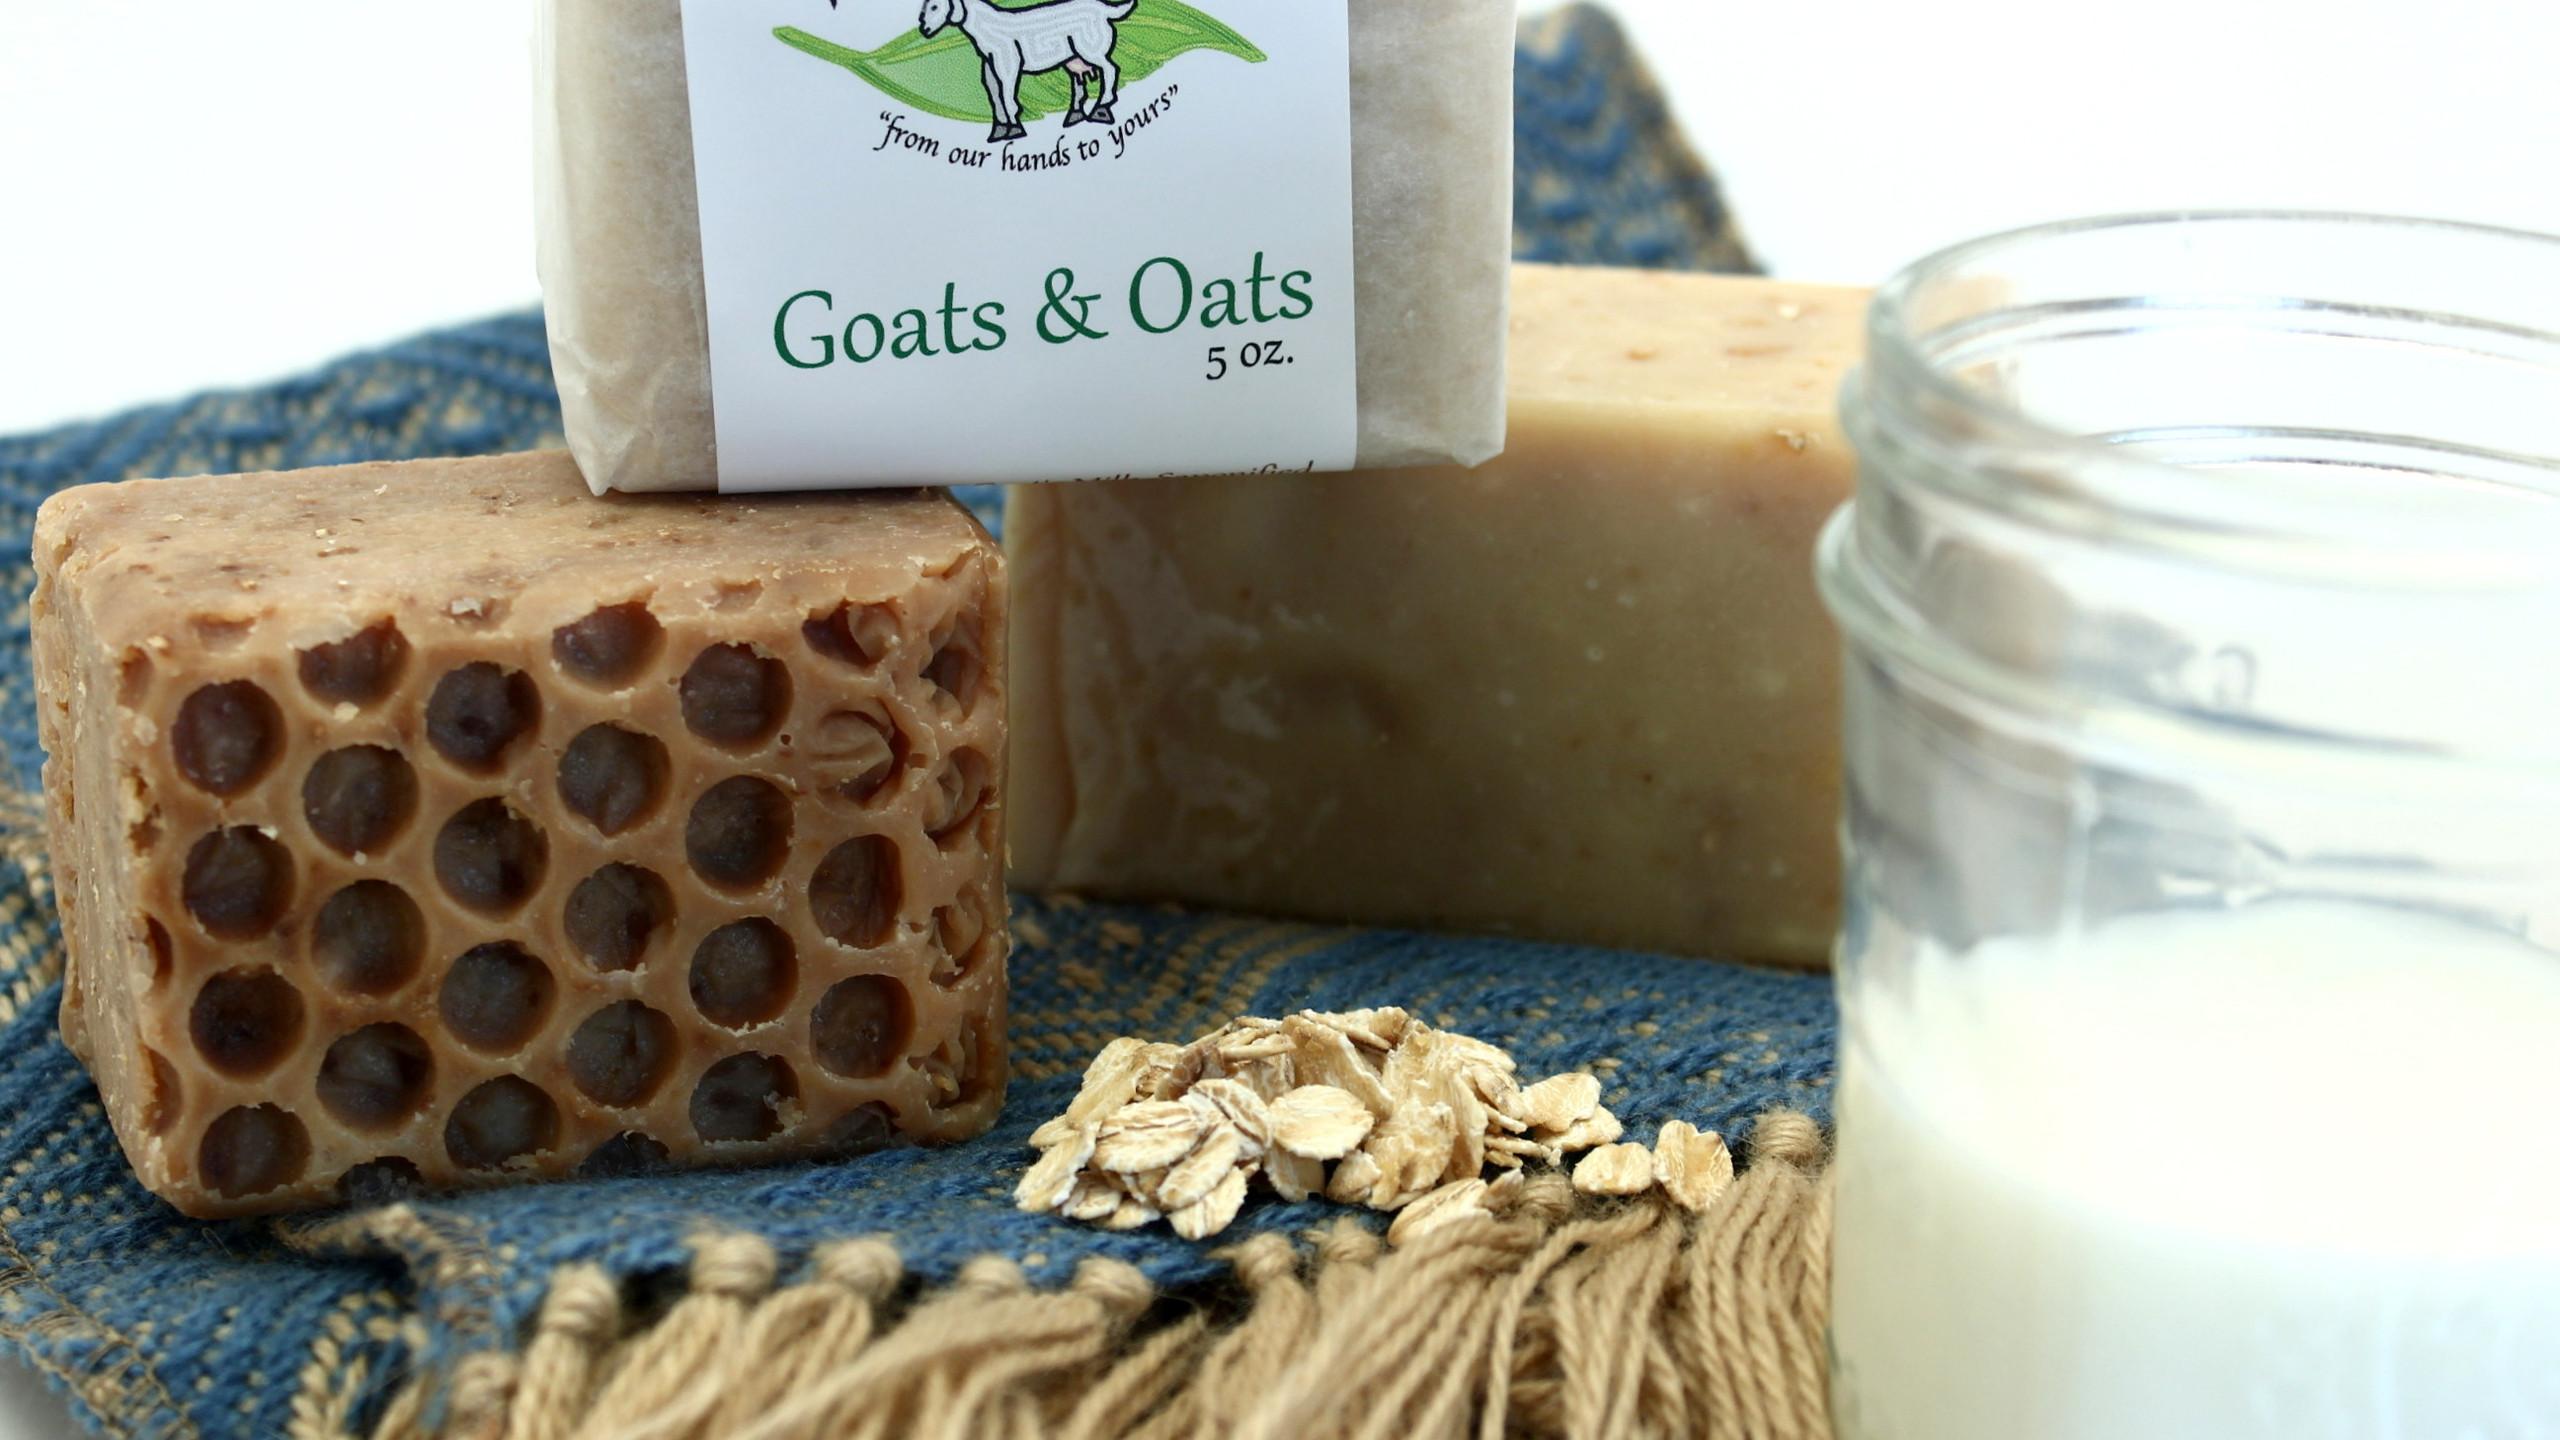 Goats and Oats Soap